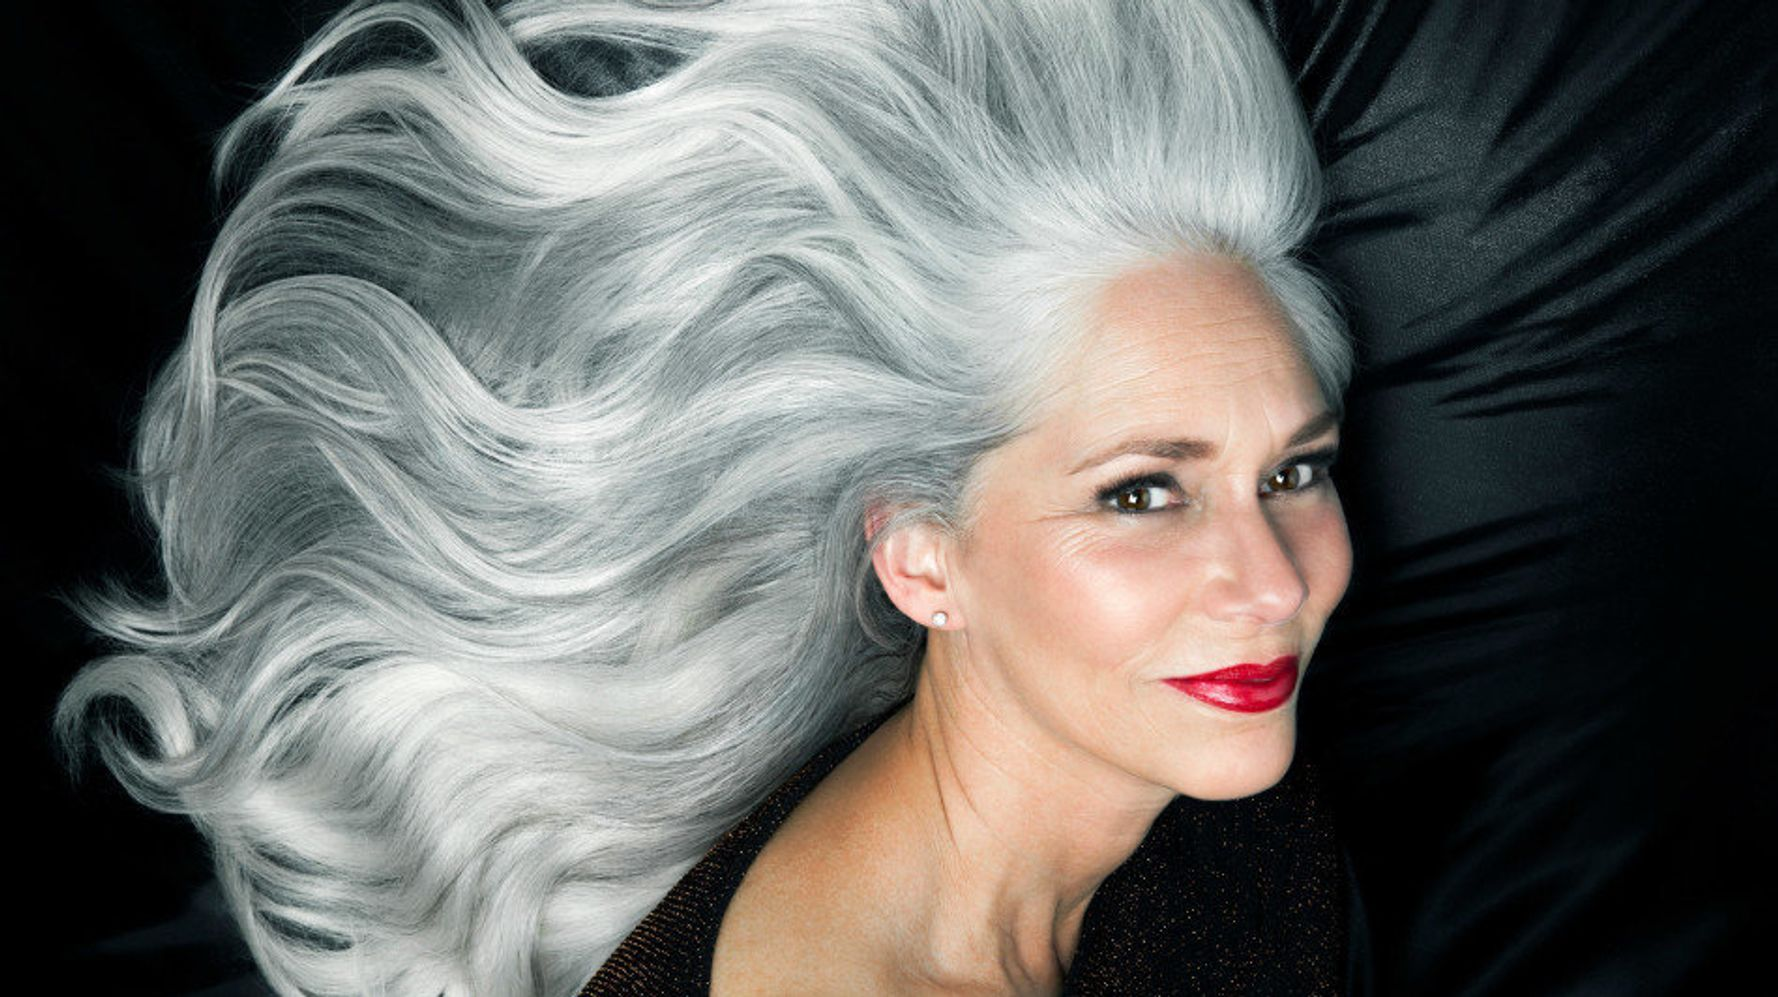 10 photos that show how beautiful gray hair really is | huffpost